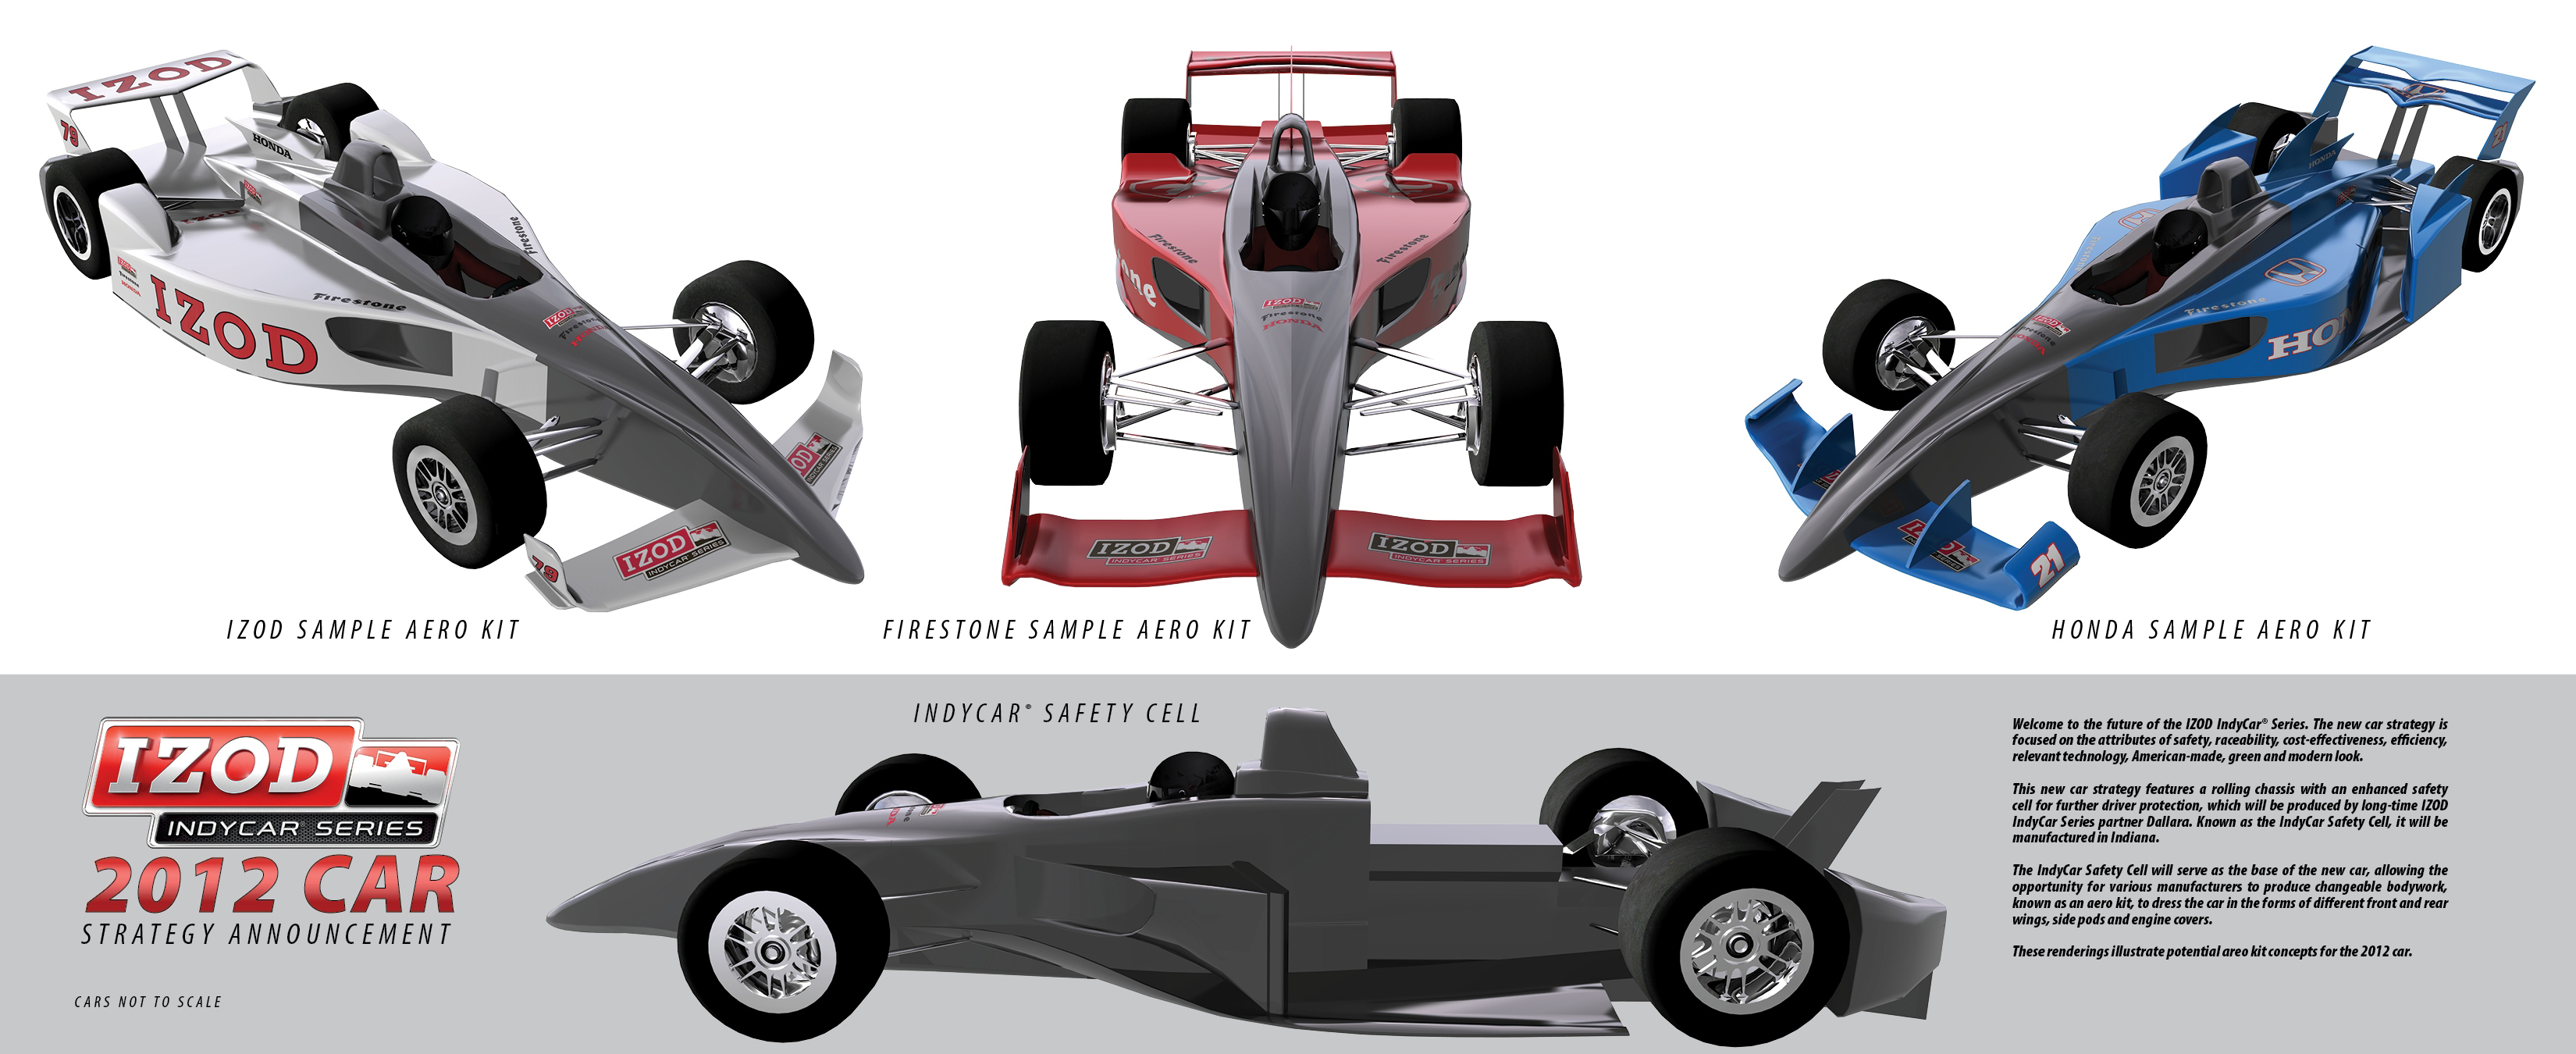 2012-car-cell-and-aero-kit samples-large